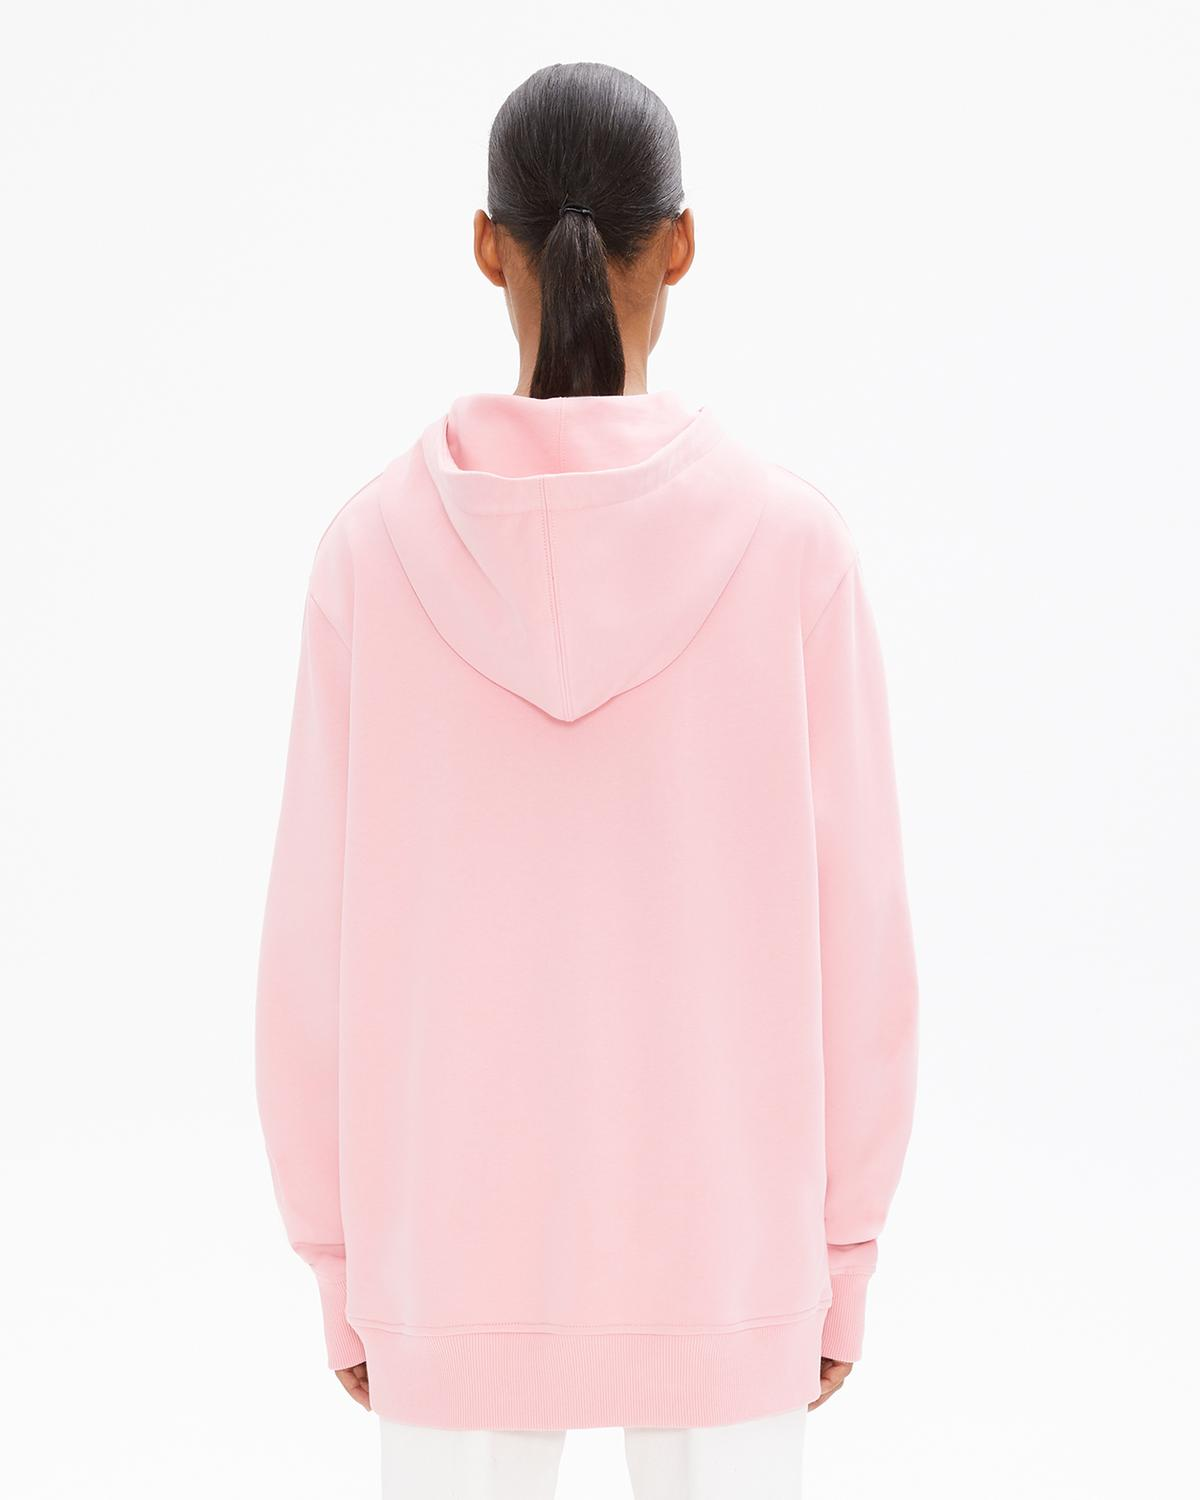 WOMEN'S JEREMY DELLER PATCH POCKET HOODIE